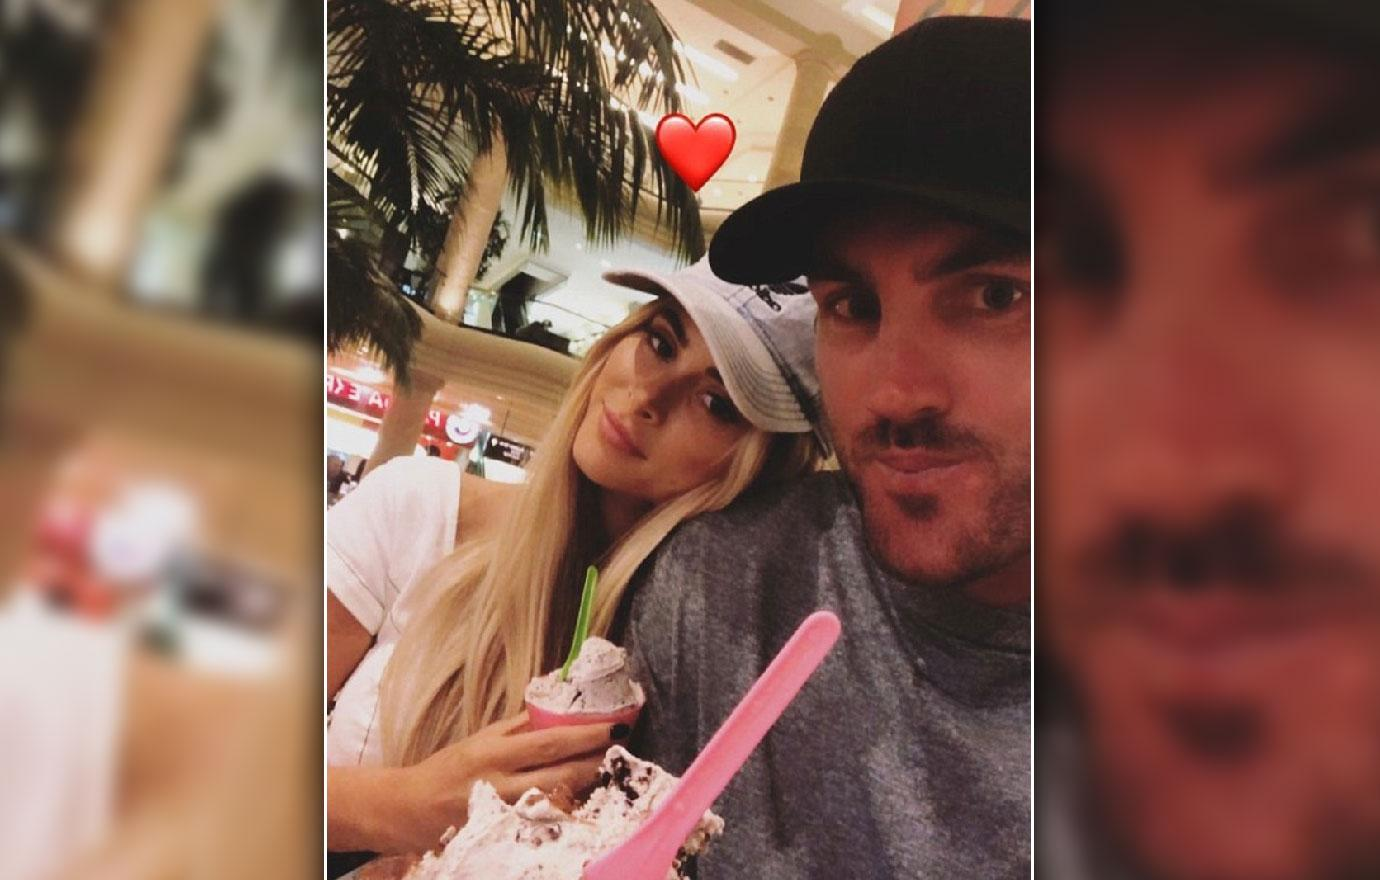 Amanda Stanton Shares Photo With Beau After Her Alleged Domestic Violence